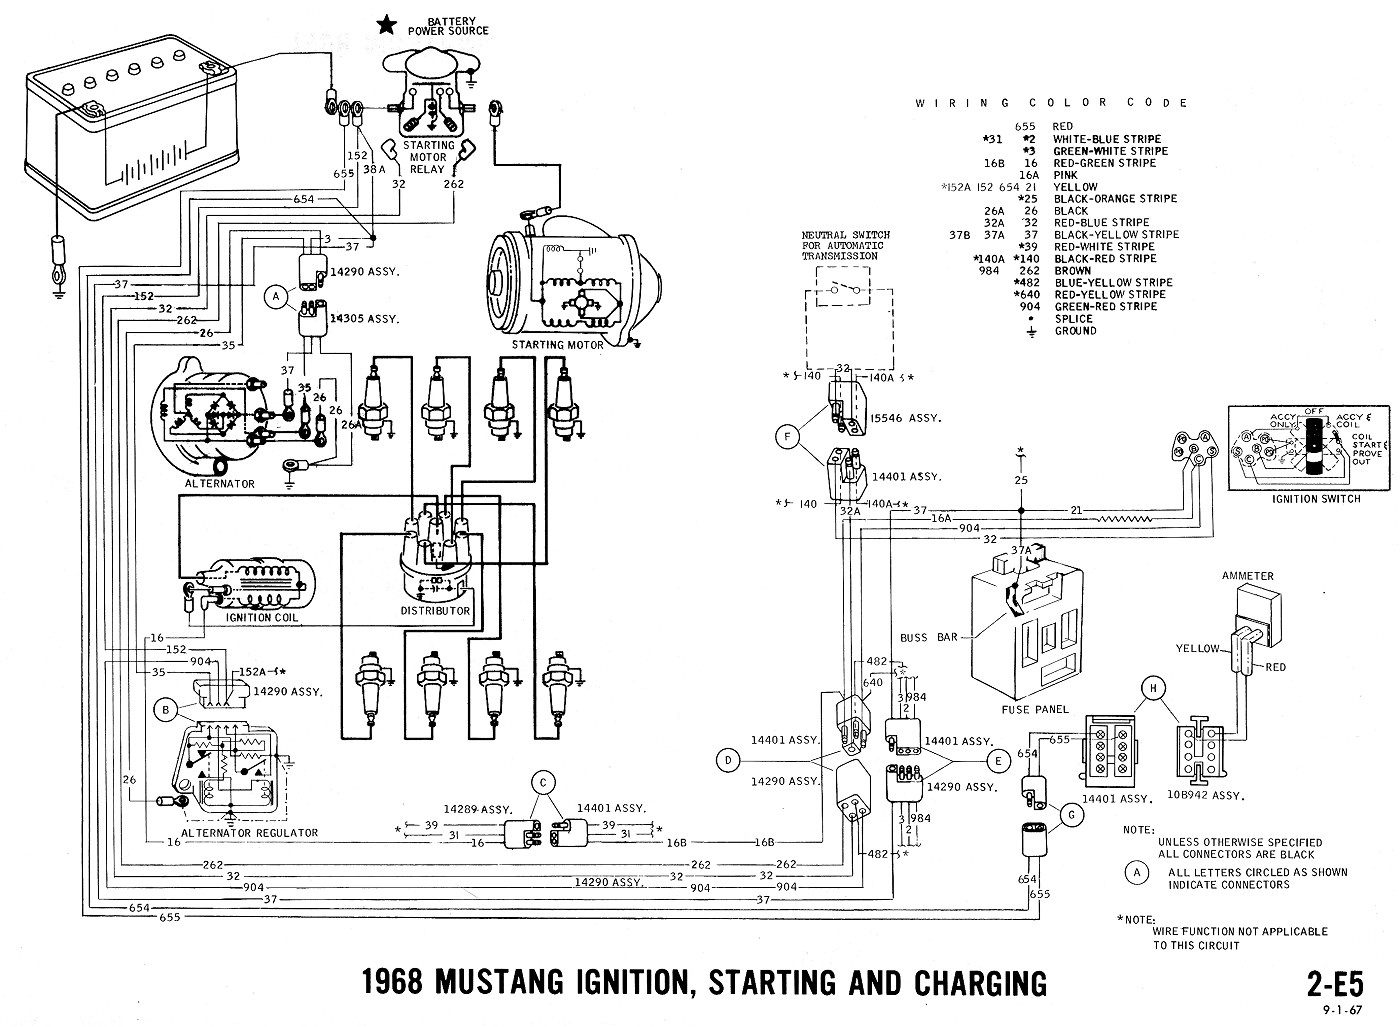 1968 F100 Wiring Harness Manual E Books E4od Mlps Diagram Mustang Gray Wire Simple Diagramwire Schematics 289 Diagrams Click